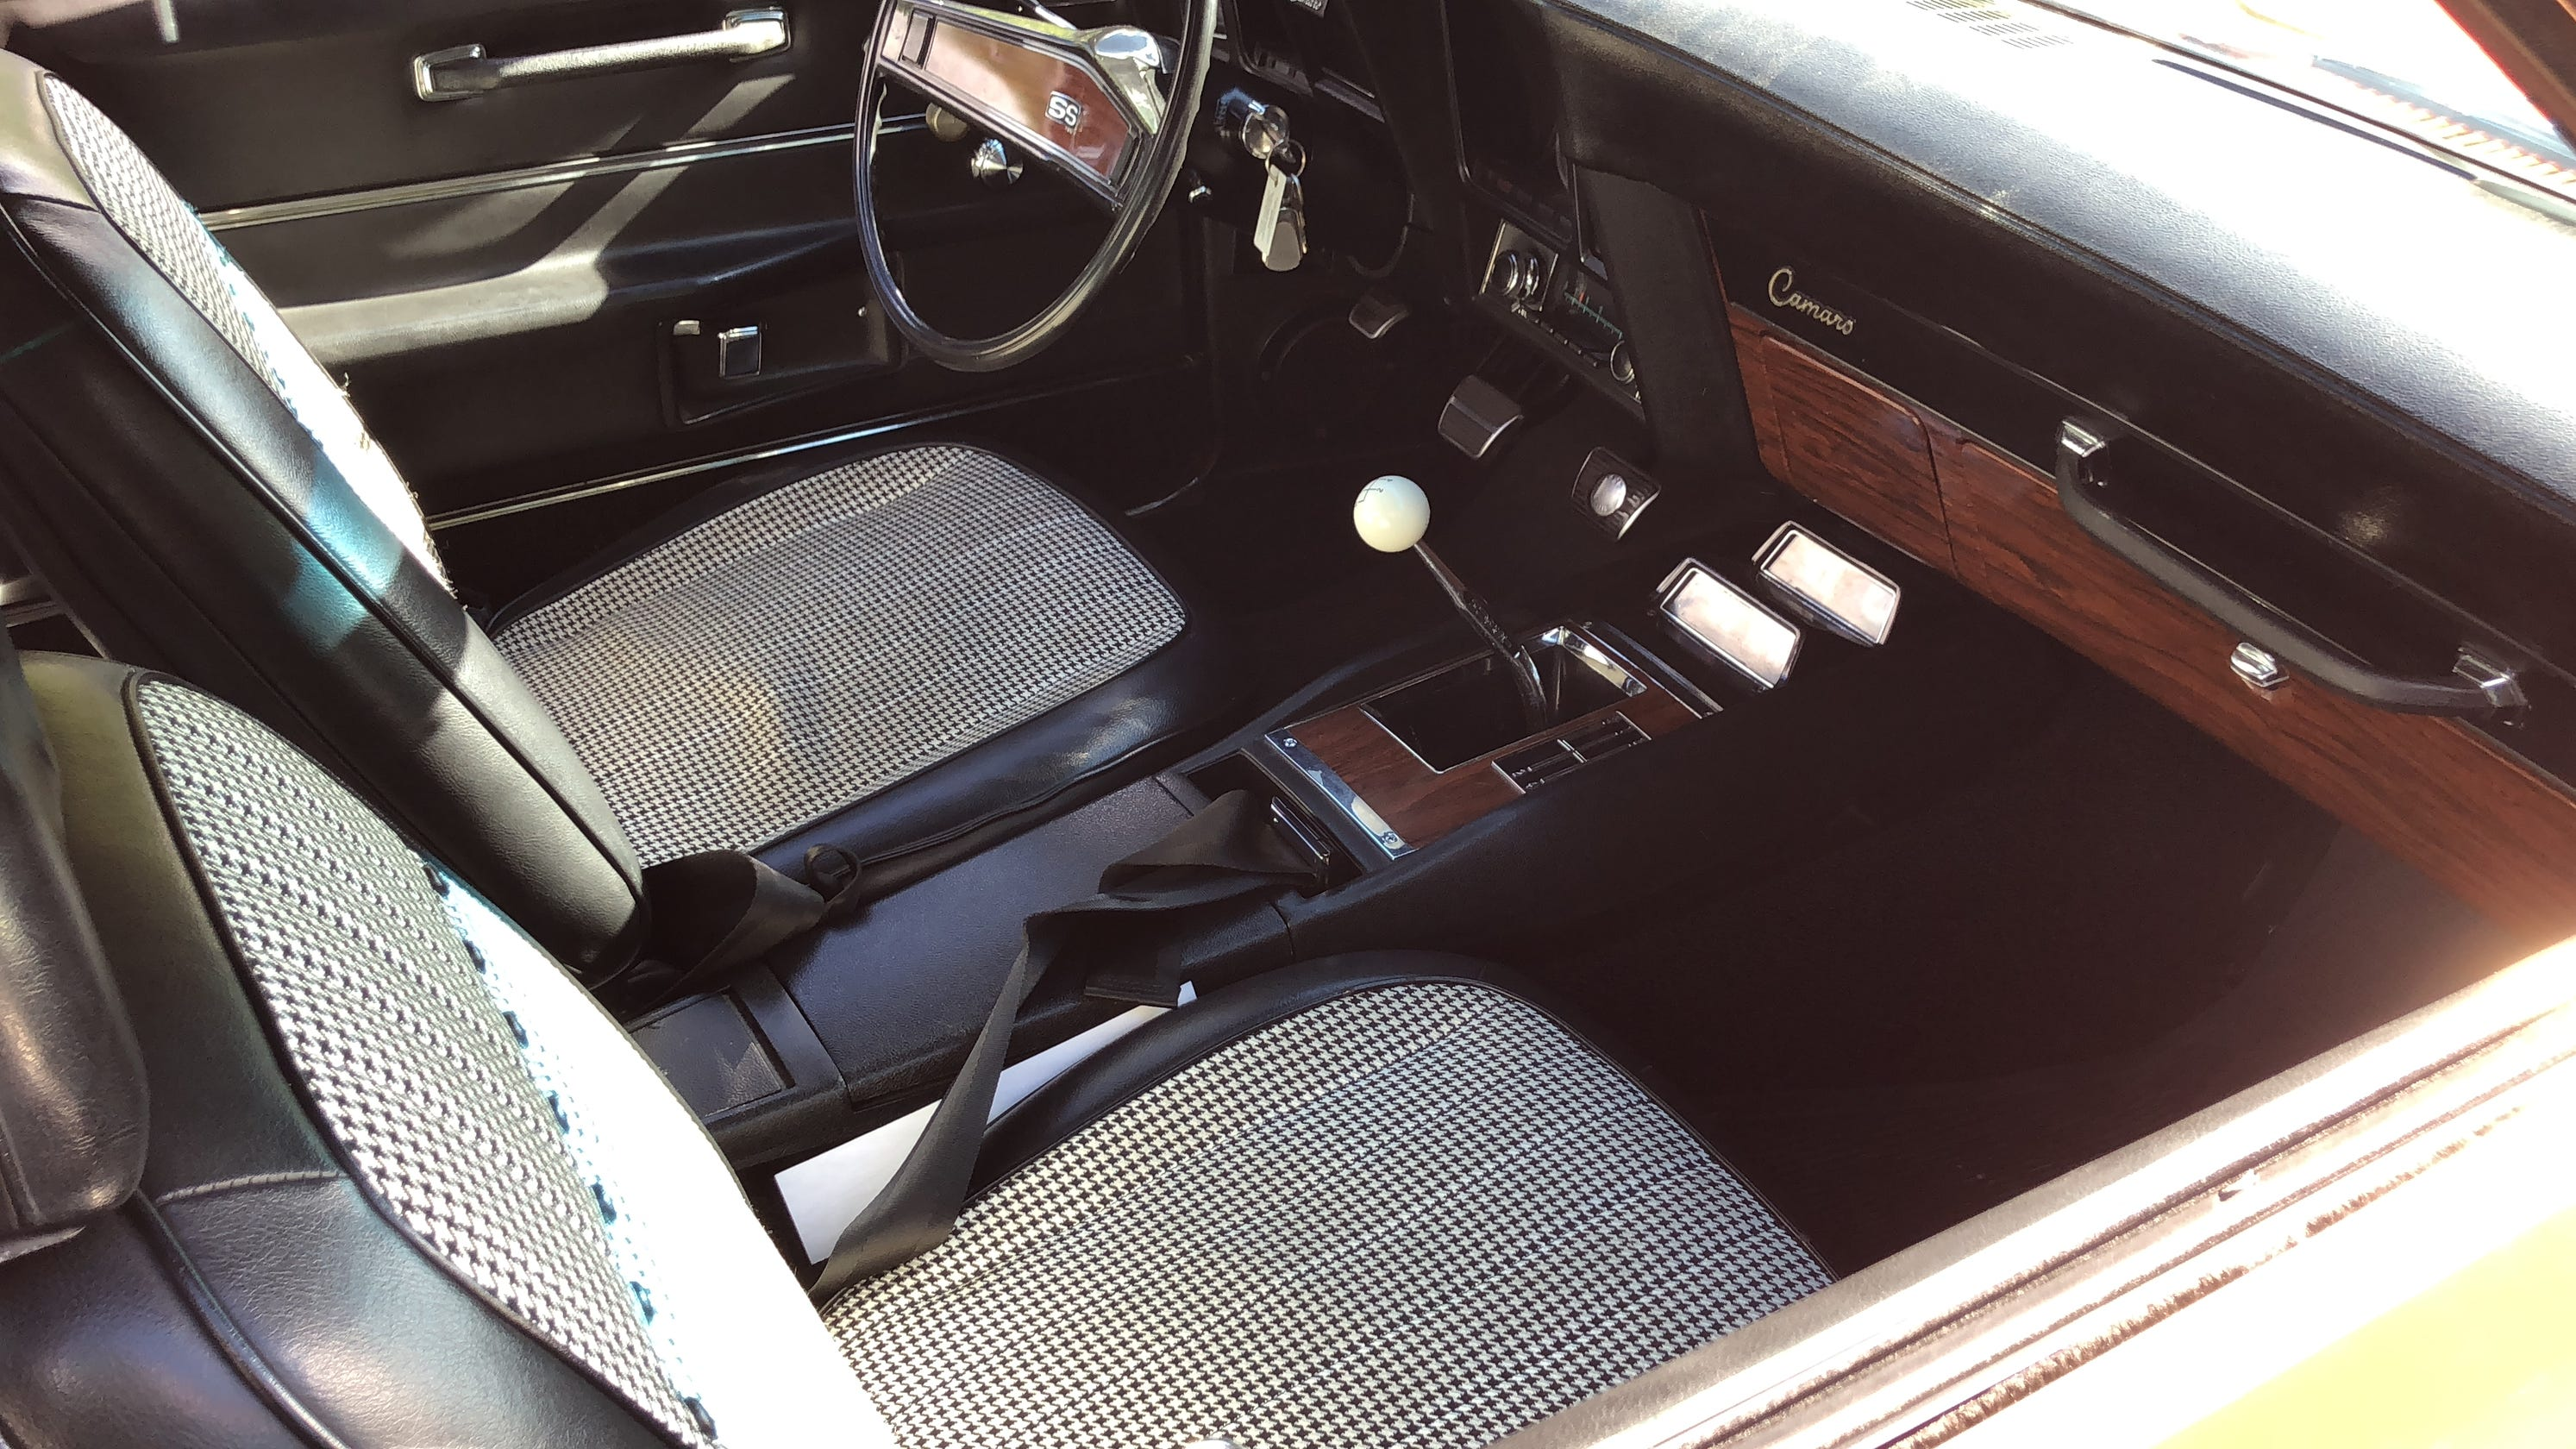 Manual transmission: Why you may want to learn to drive one